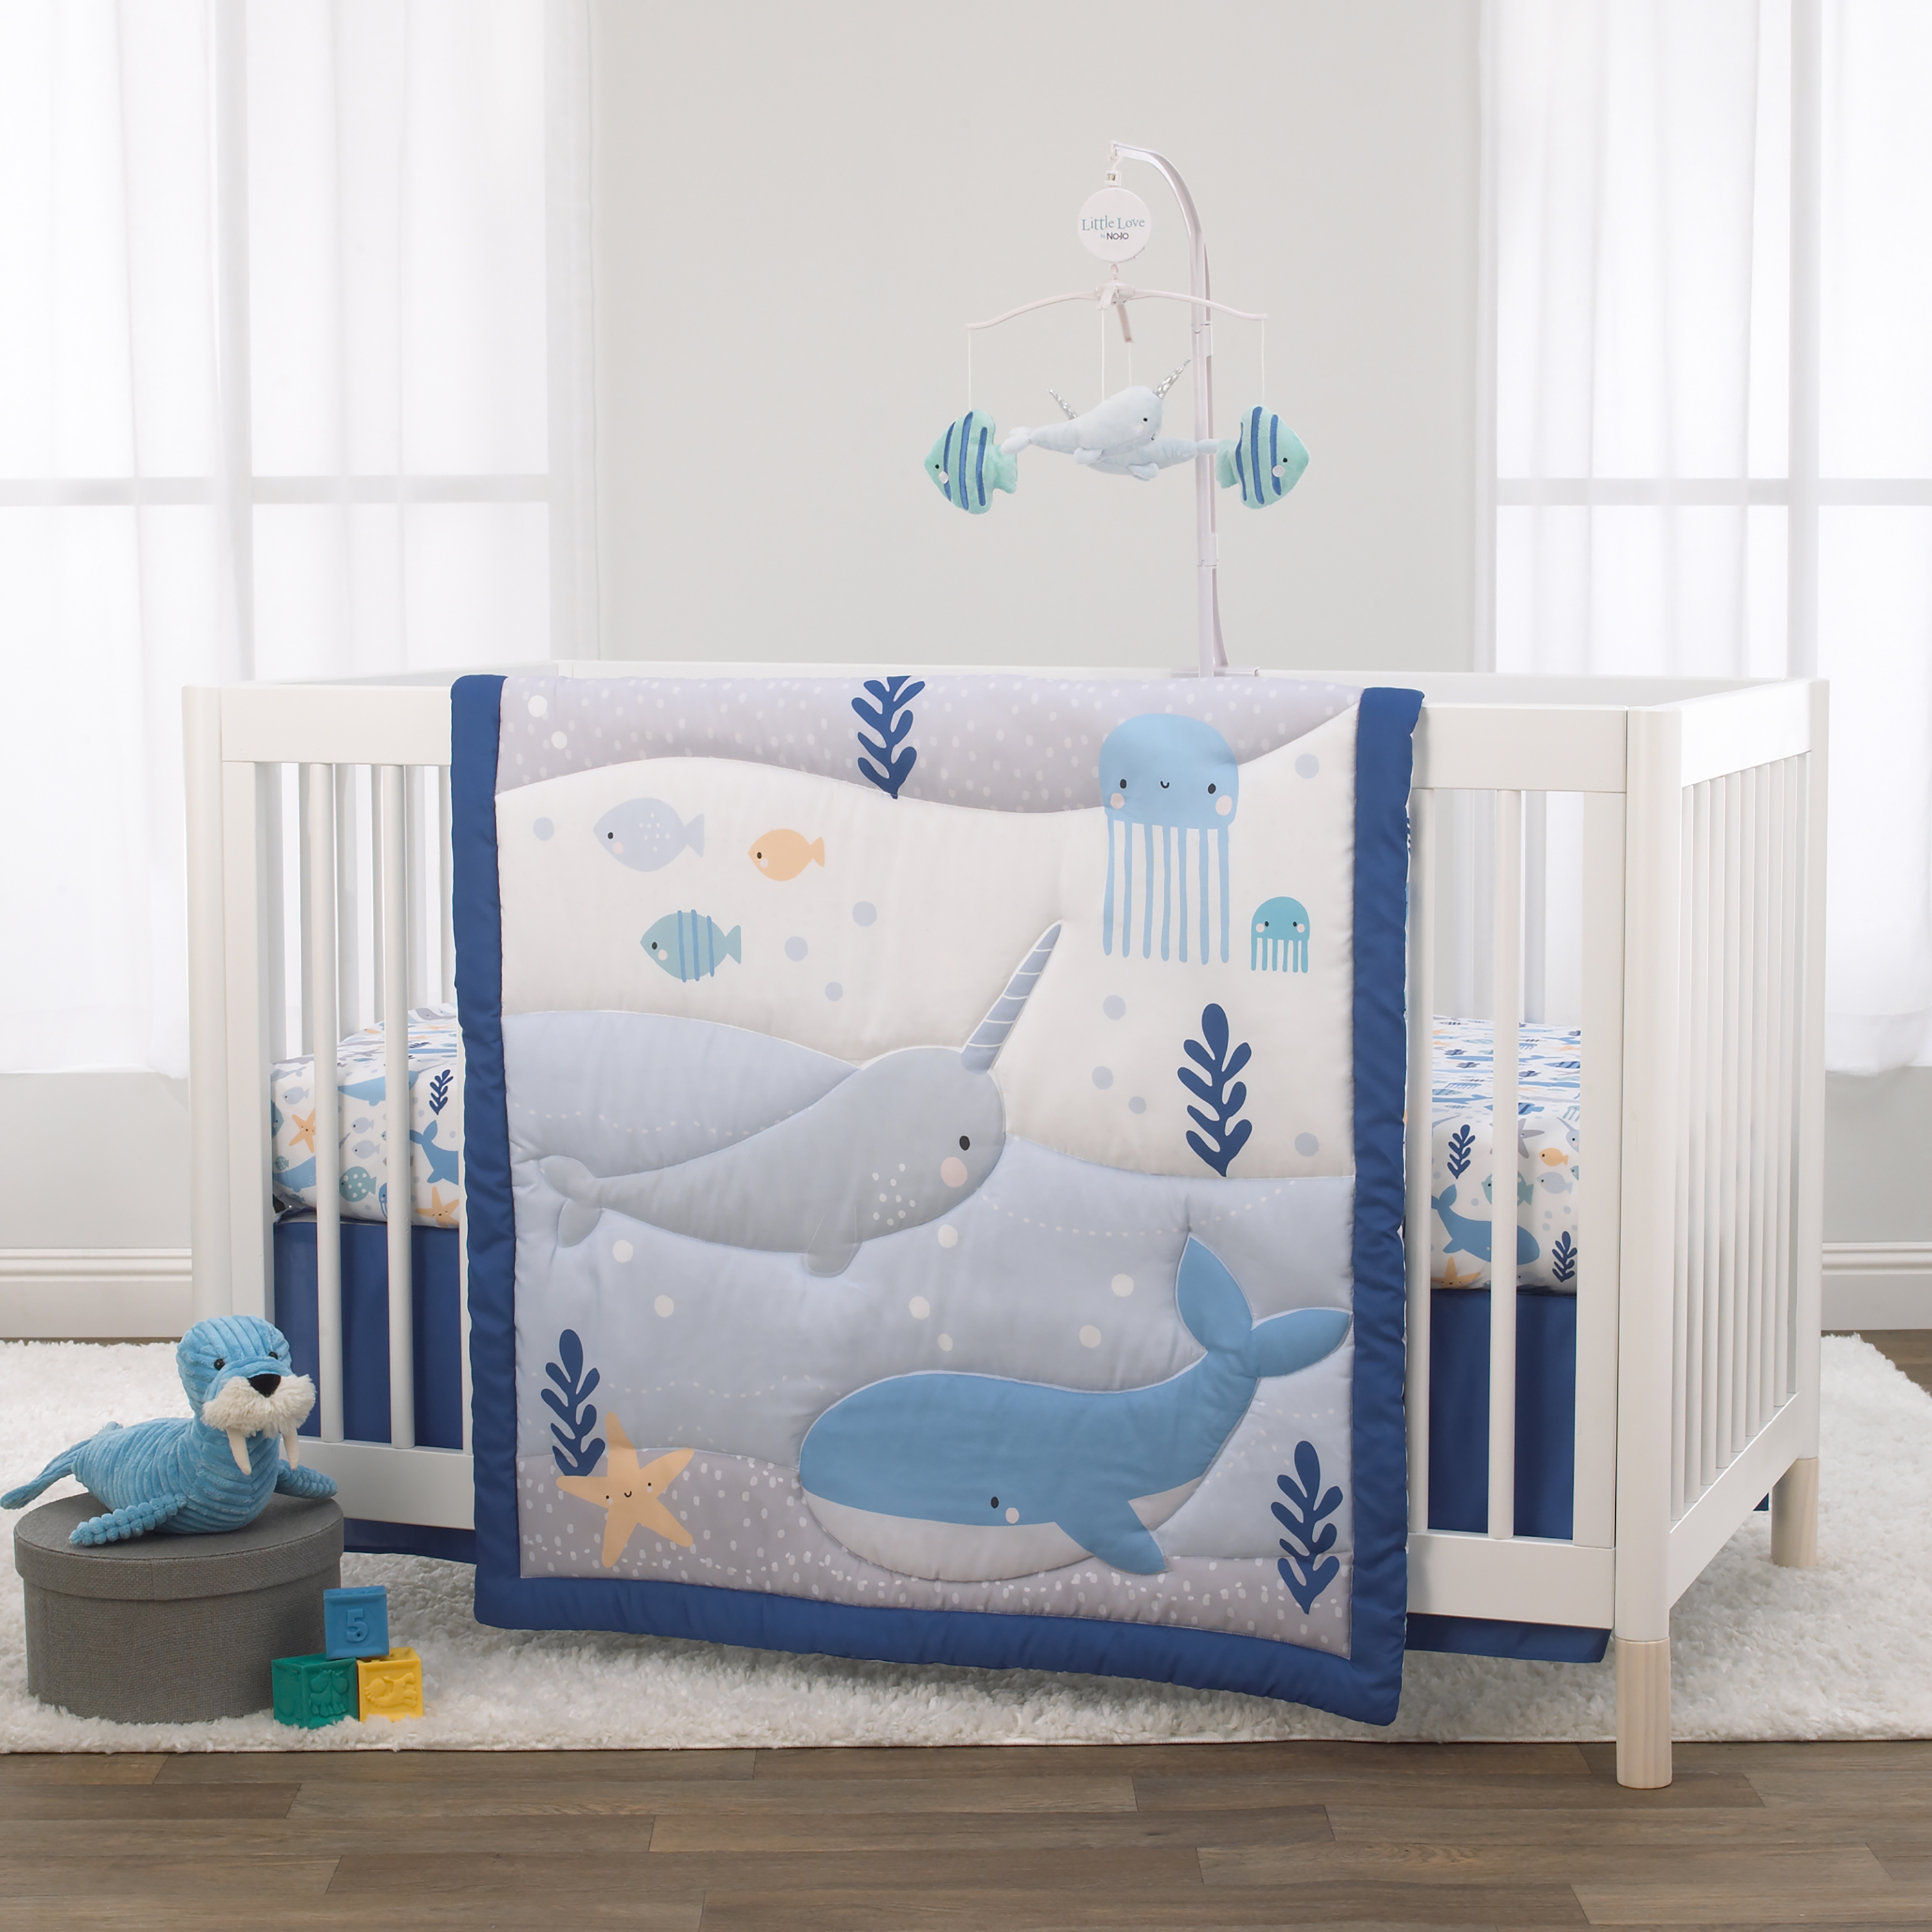 Iced Drink Toss on Blue Fitted Crib Sheet